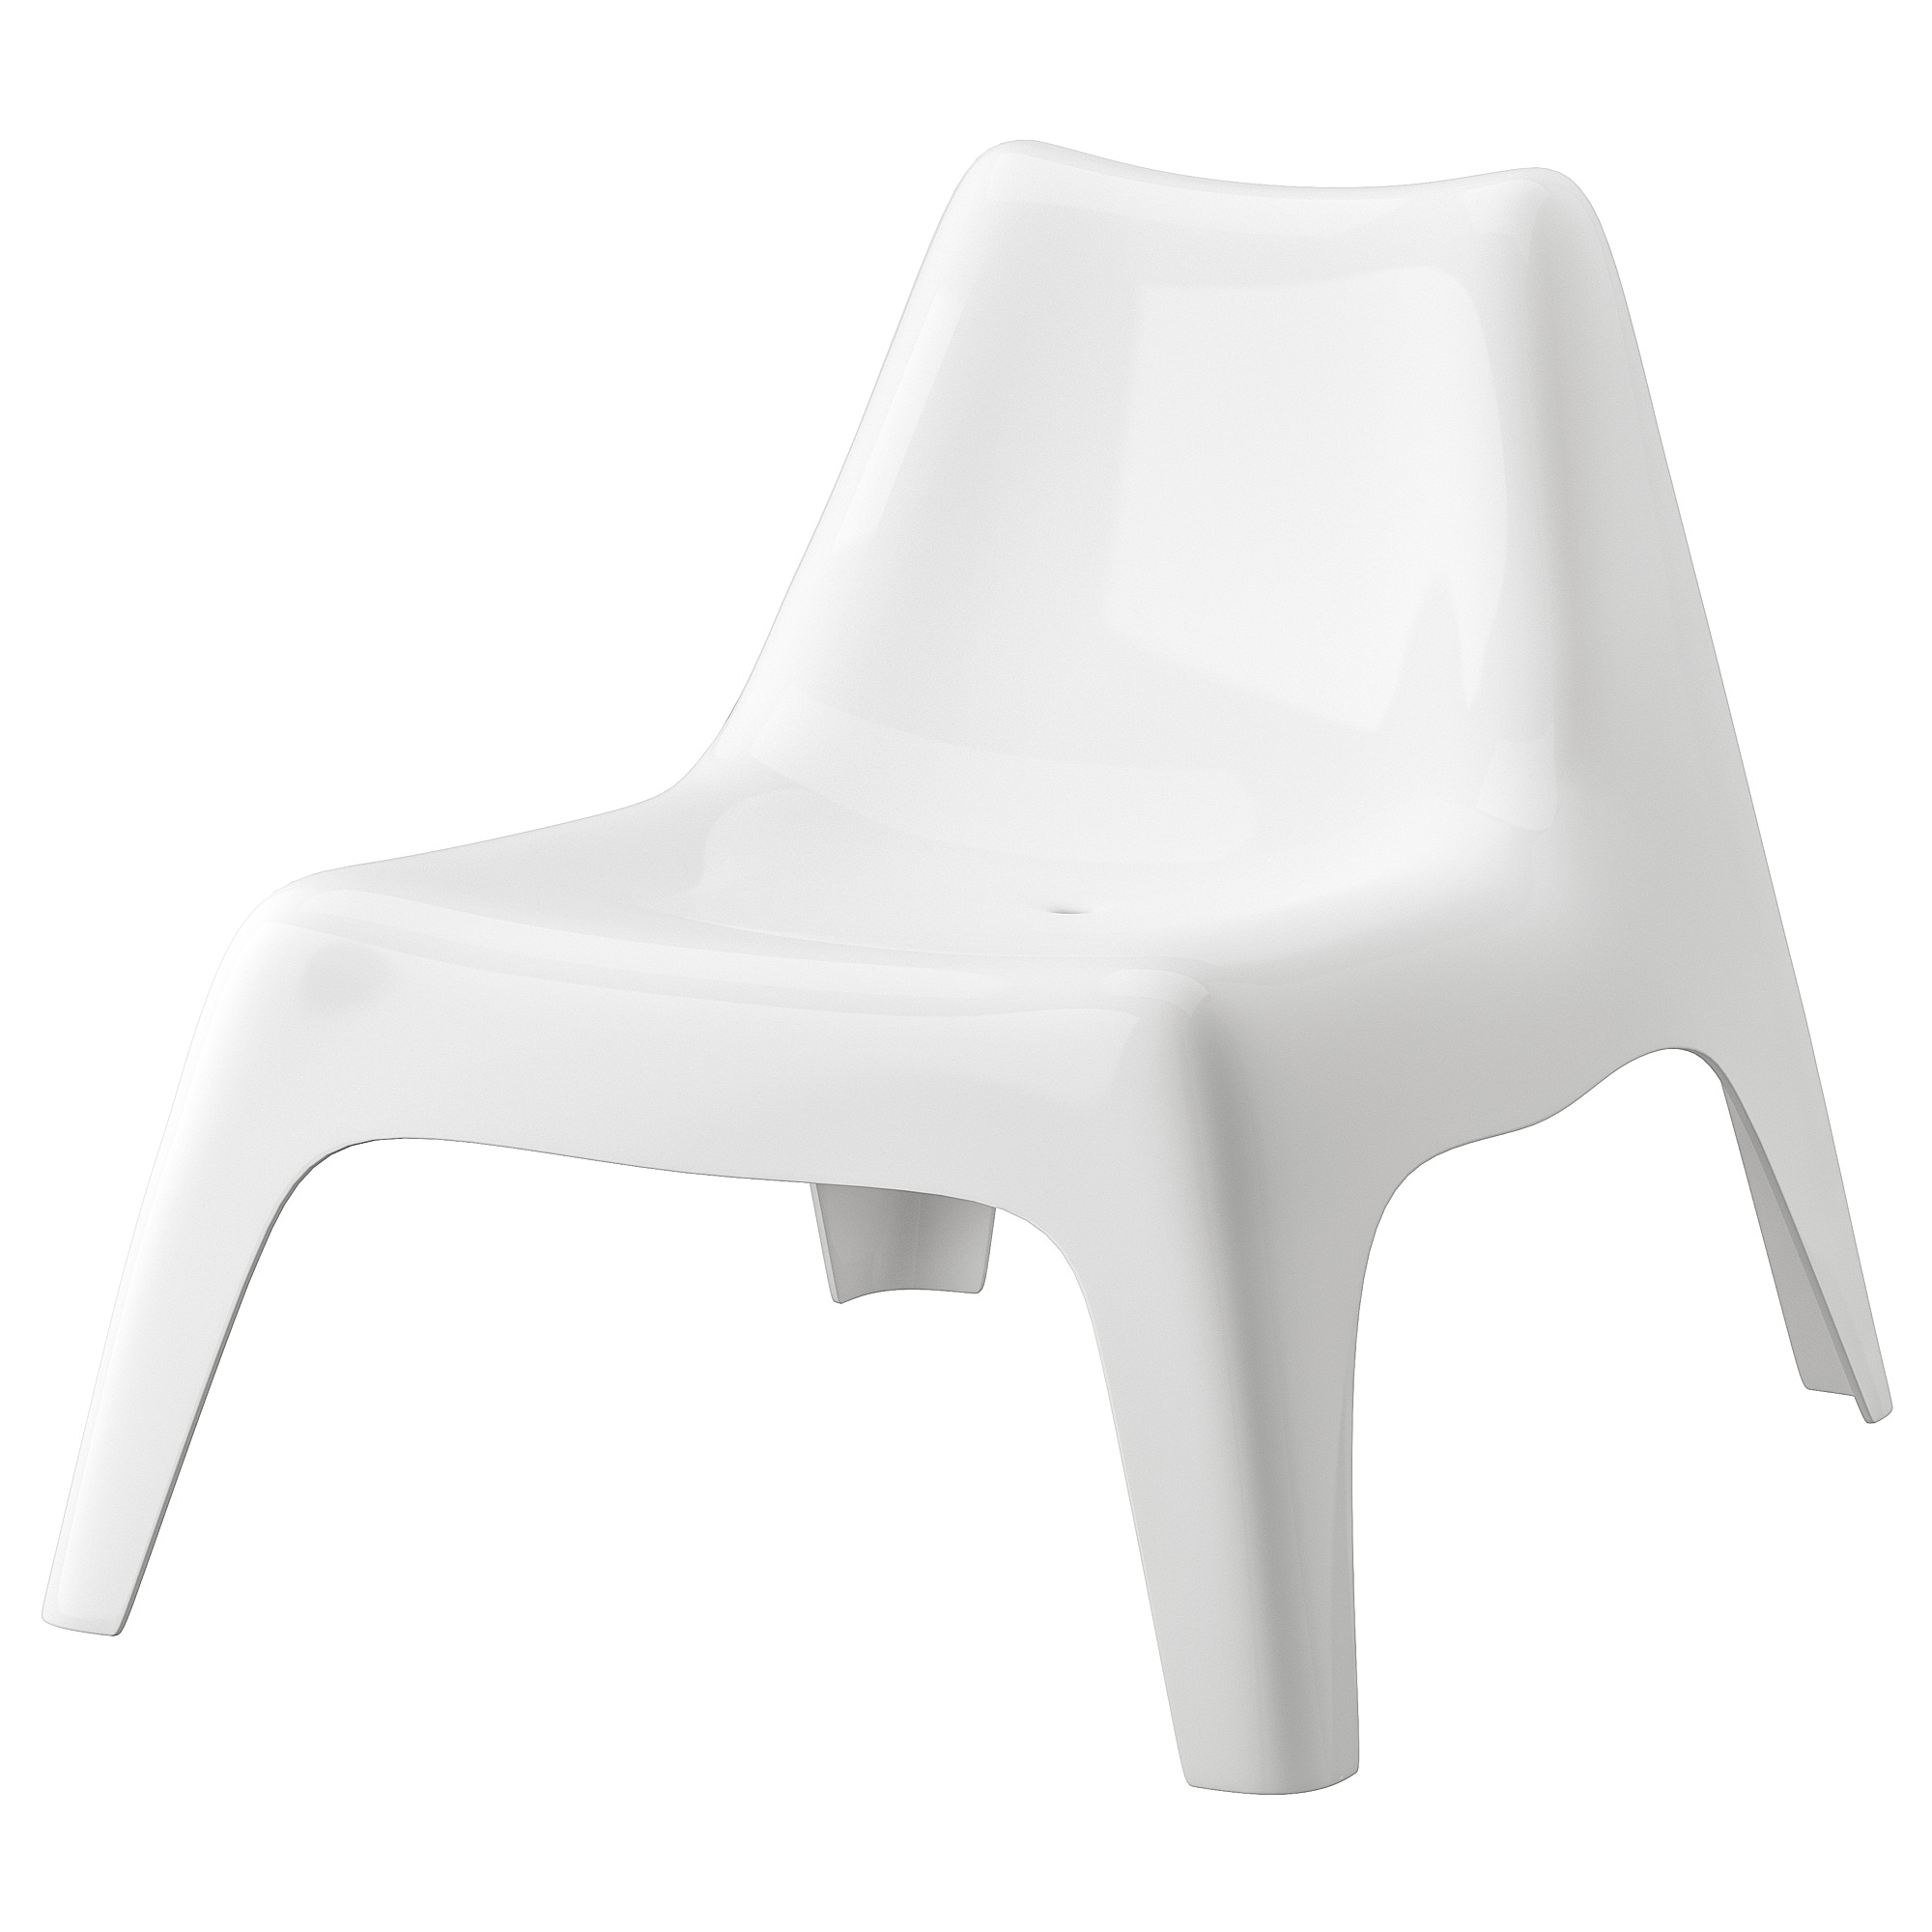 Chair Outdoor Ikea Ps Vago White